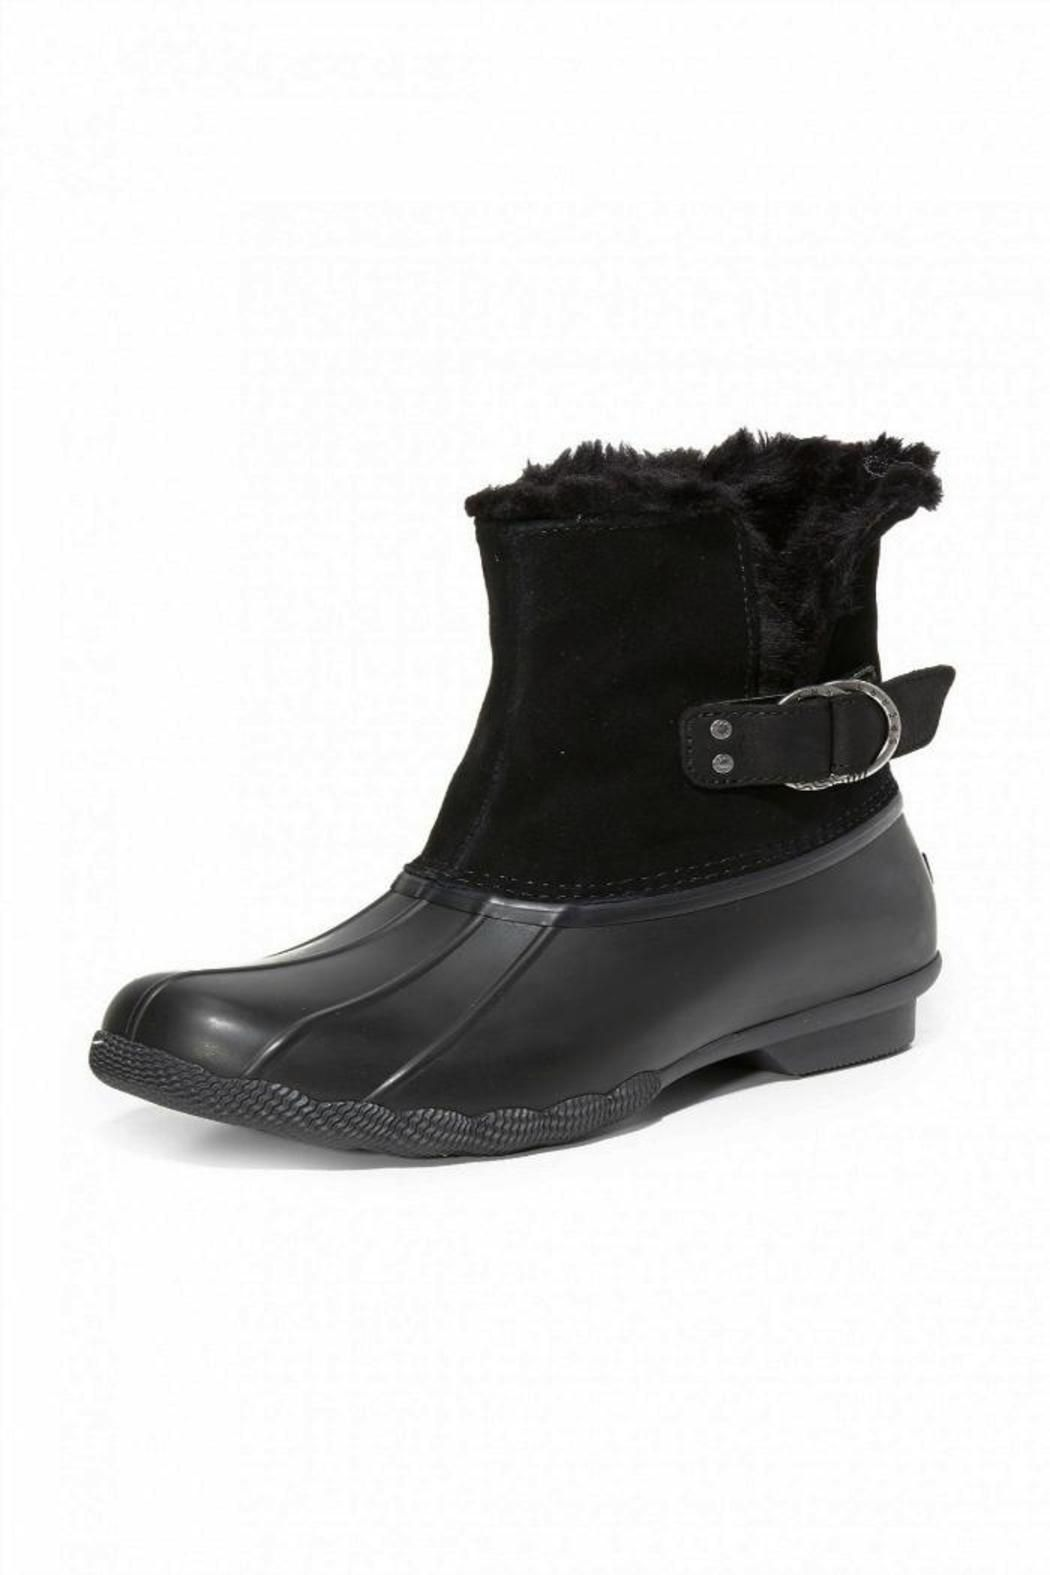 ec578319c7eb Take on chilly weather wearing the Sperry Saltwater Ivy Duck Boot. With a  fur interior